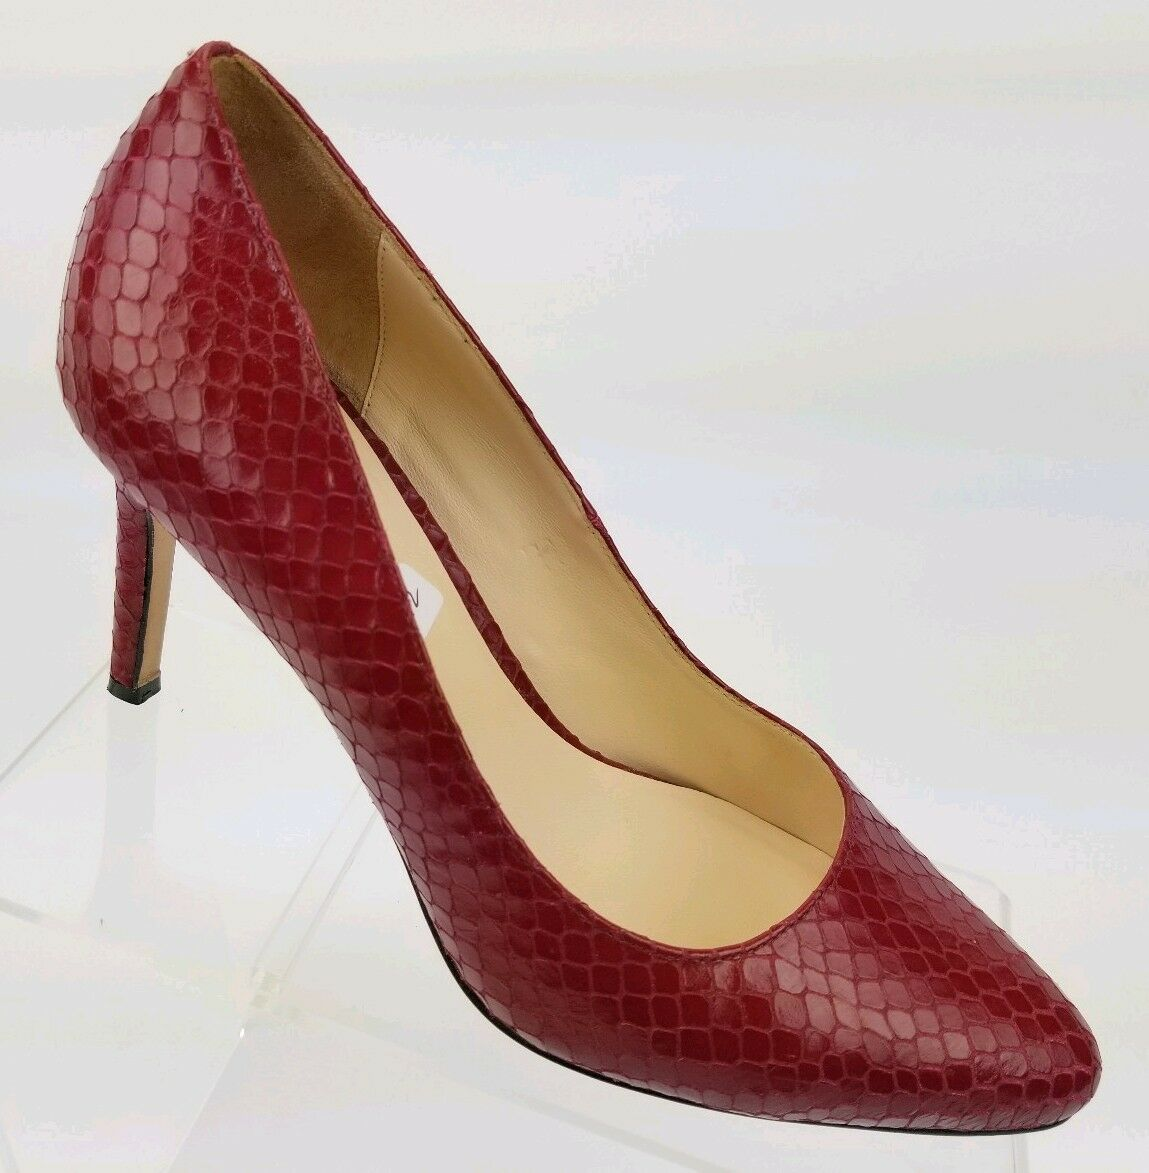 COLE HAAN Bethany Grand OS Women's Pumps Red Snakeskin Embossed Heels Sz 8B